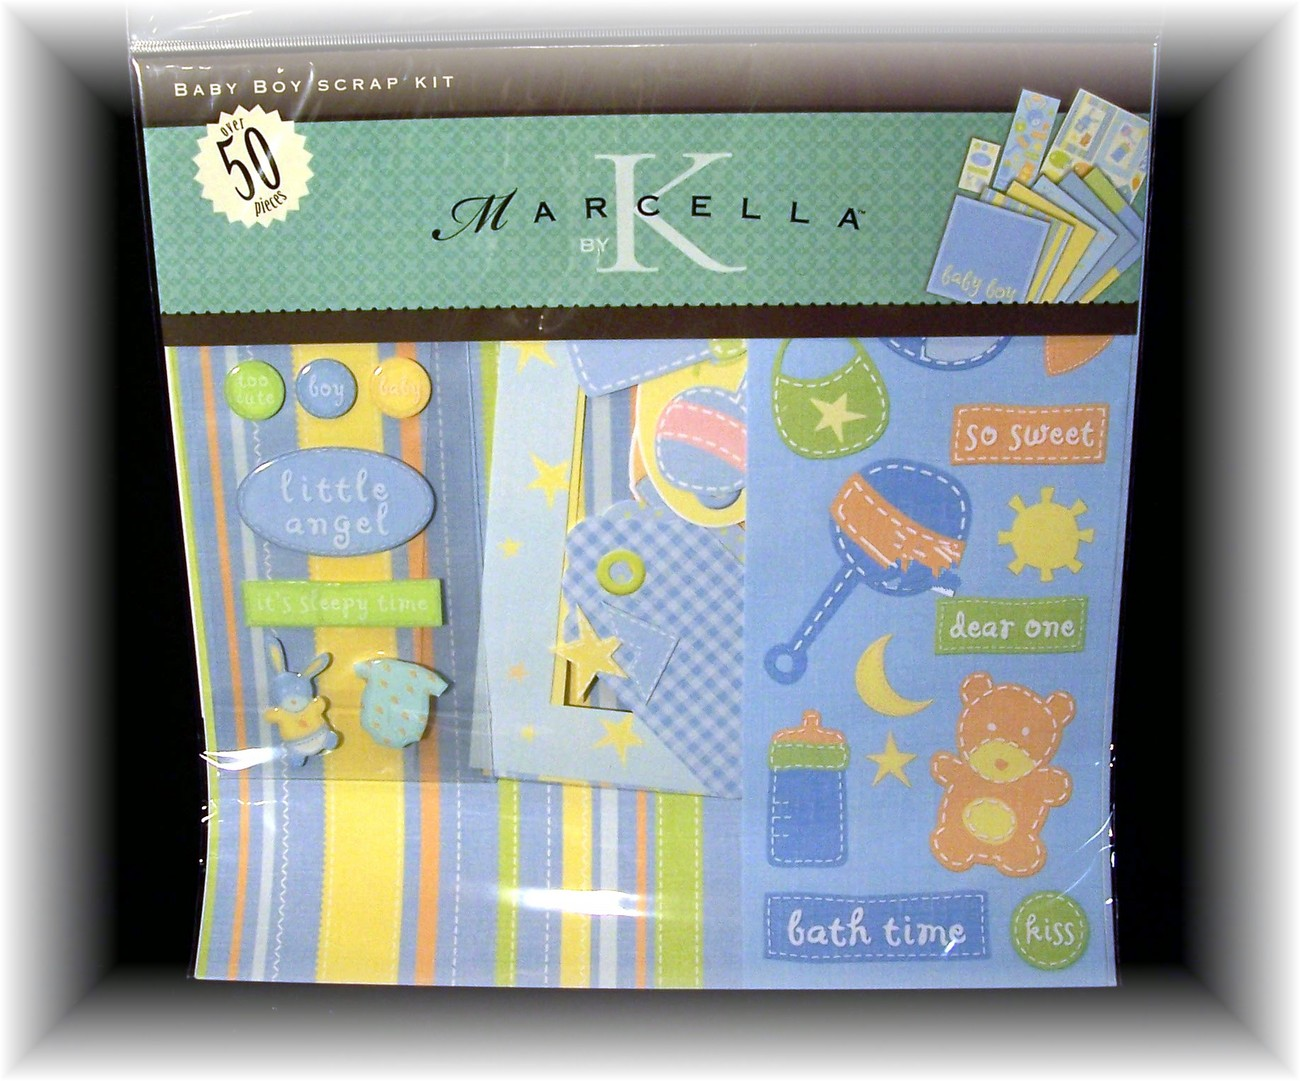 ~Baby Boy Scrapbook Kit, Marcella by K, NIP~ Over 50Pcs